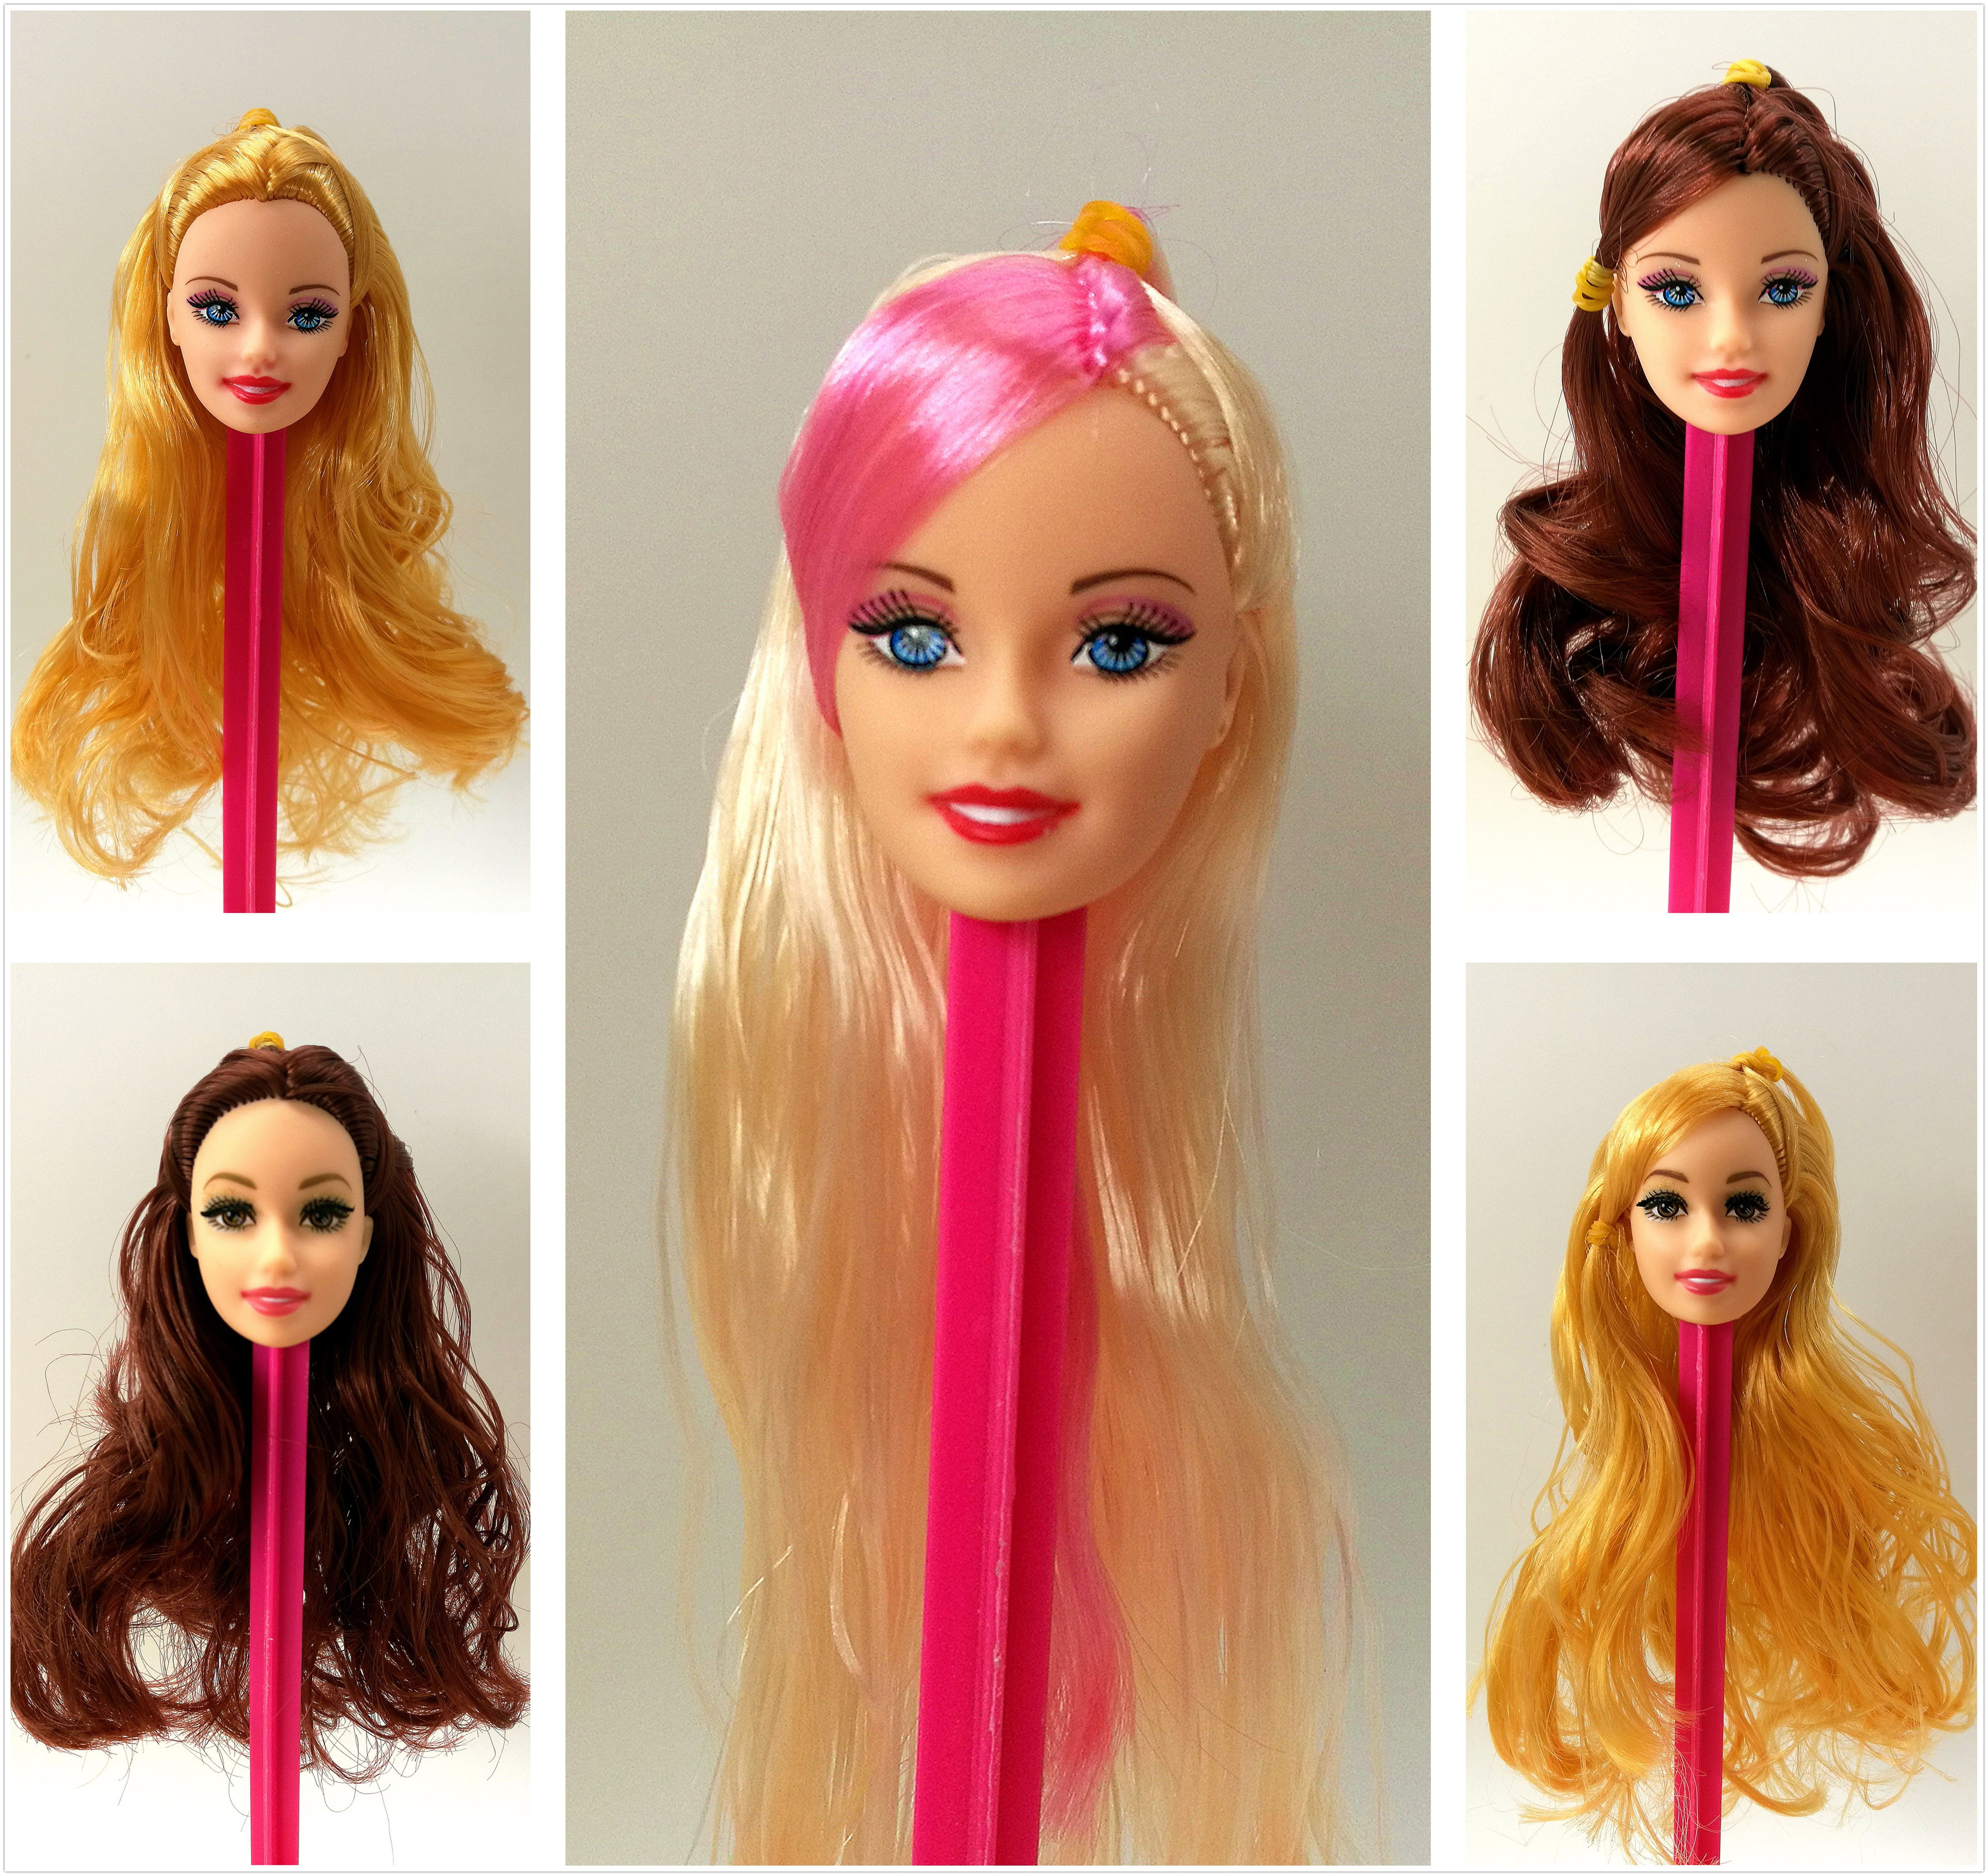 Lowest Price Excellent Quality Doll Head With Colorized Hair Girl Doll Accessories DIY Gift For Barbie Dolls Head